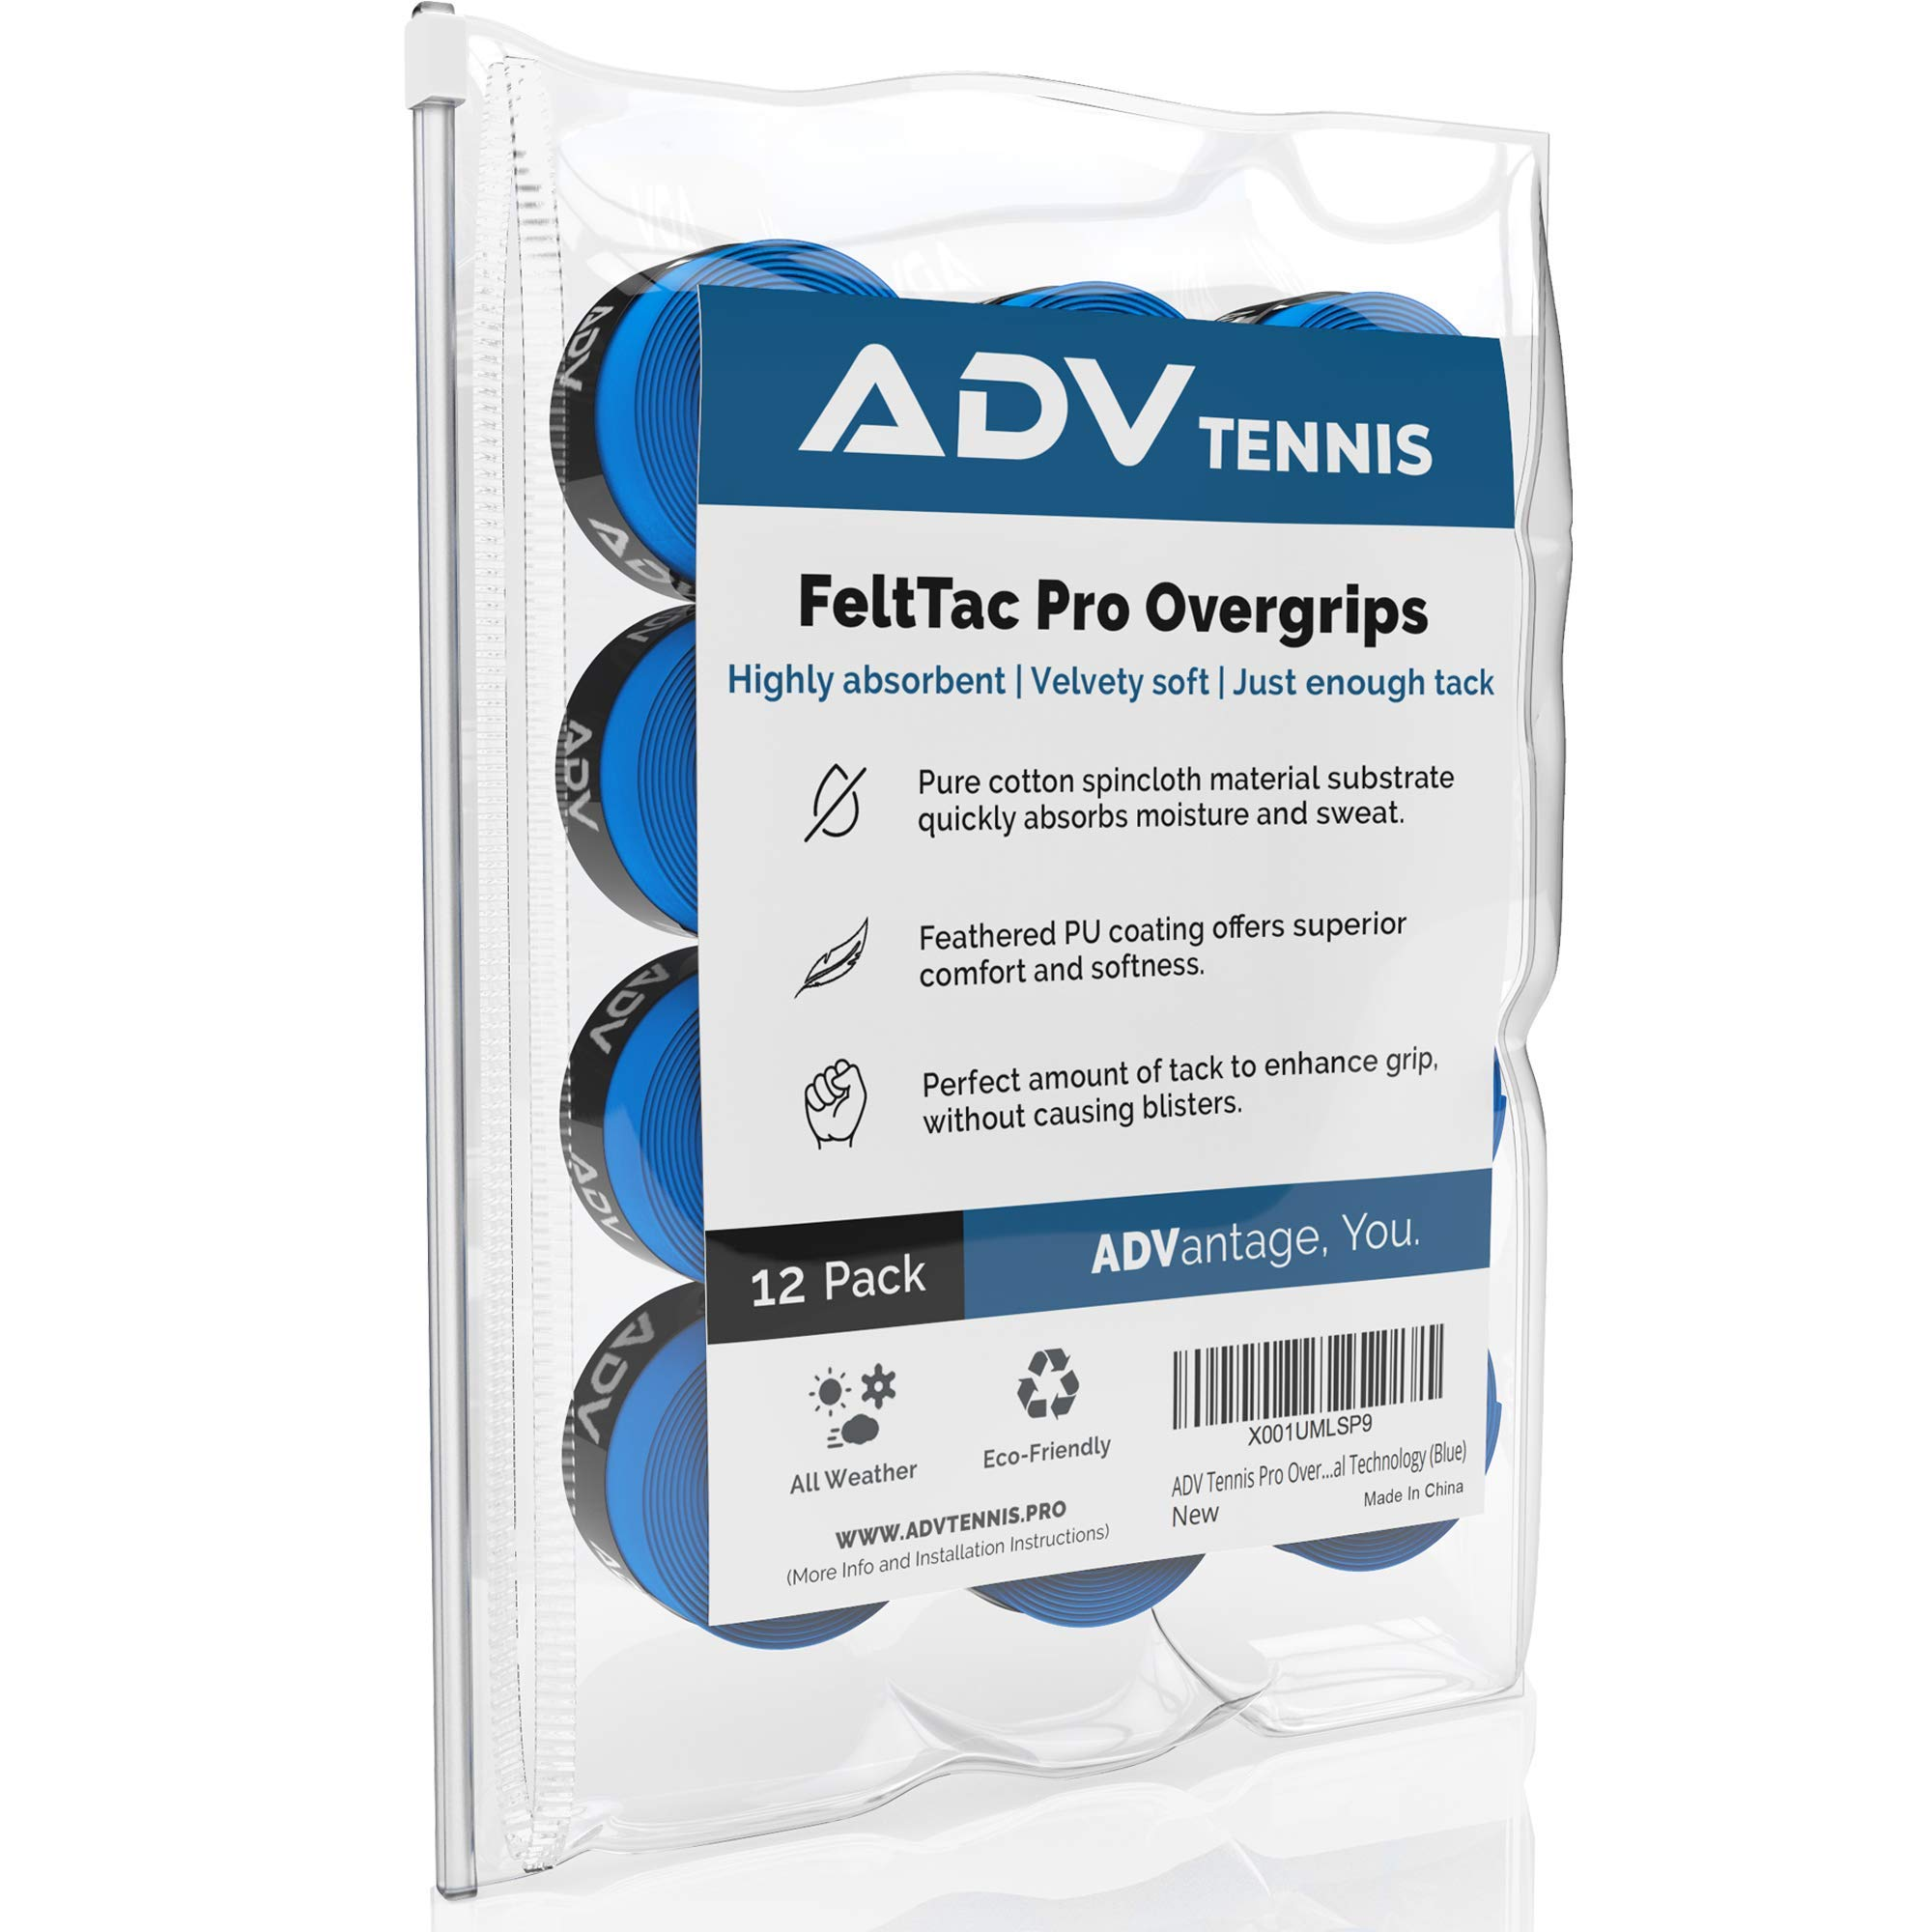 ADV Tennis Dry Overgrip - Remarkably Absorbent - Must Feel Velvety Comfort - Exclusive FeltTac Material (12 Pack, Blue)